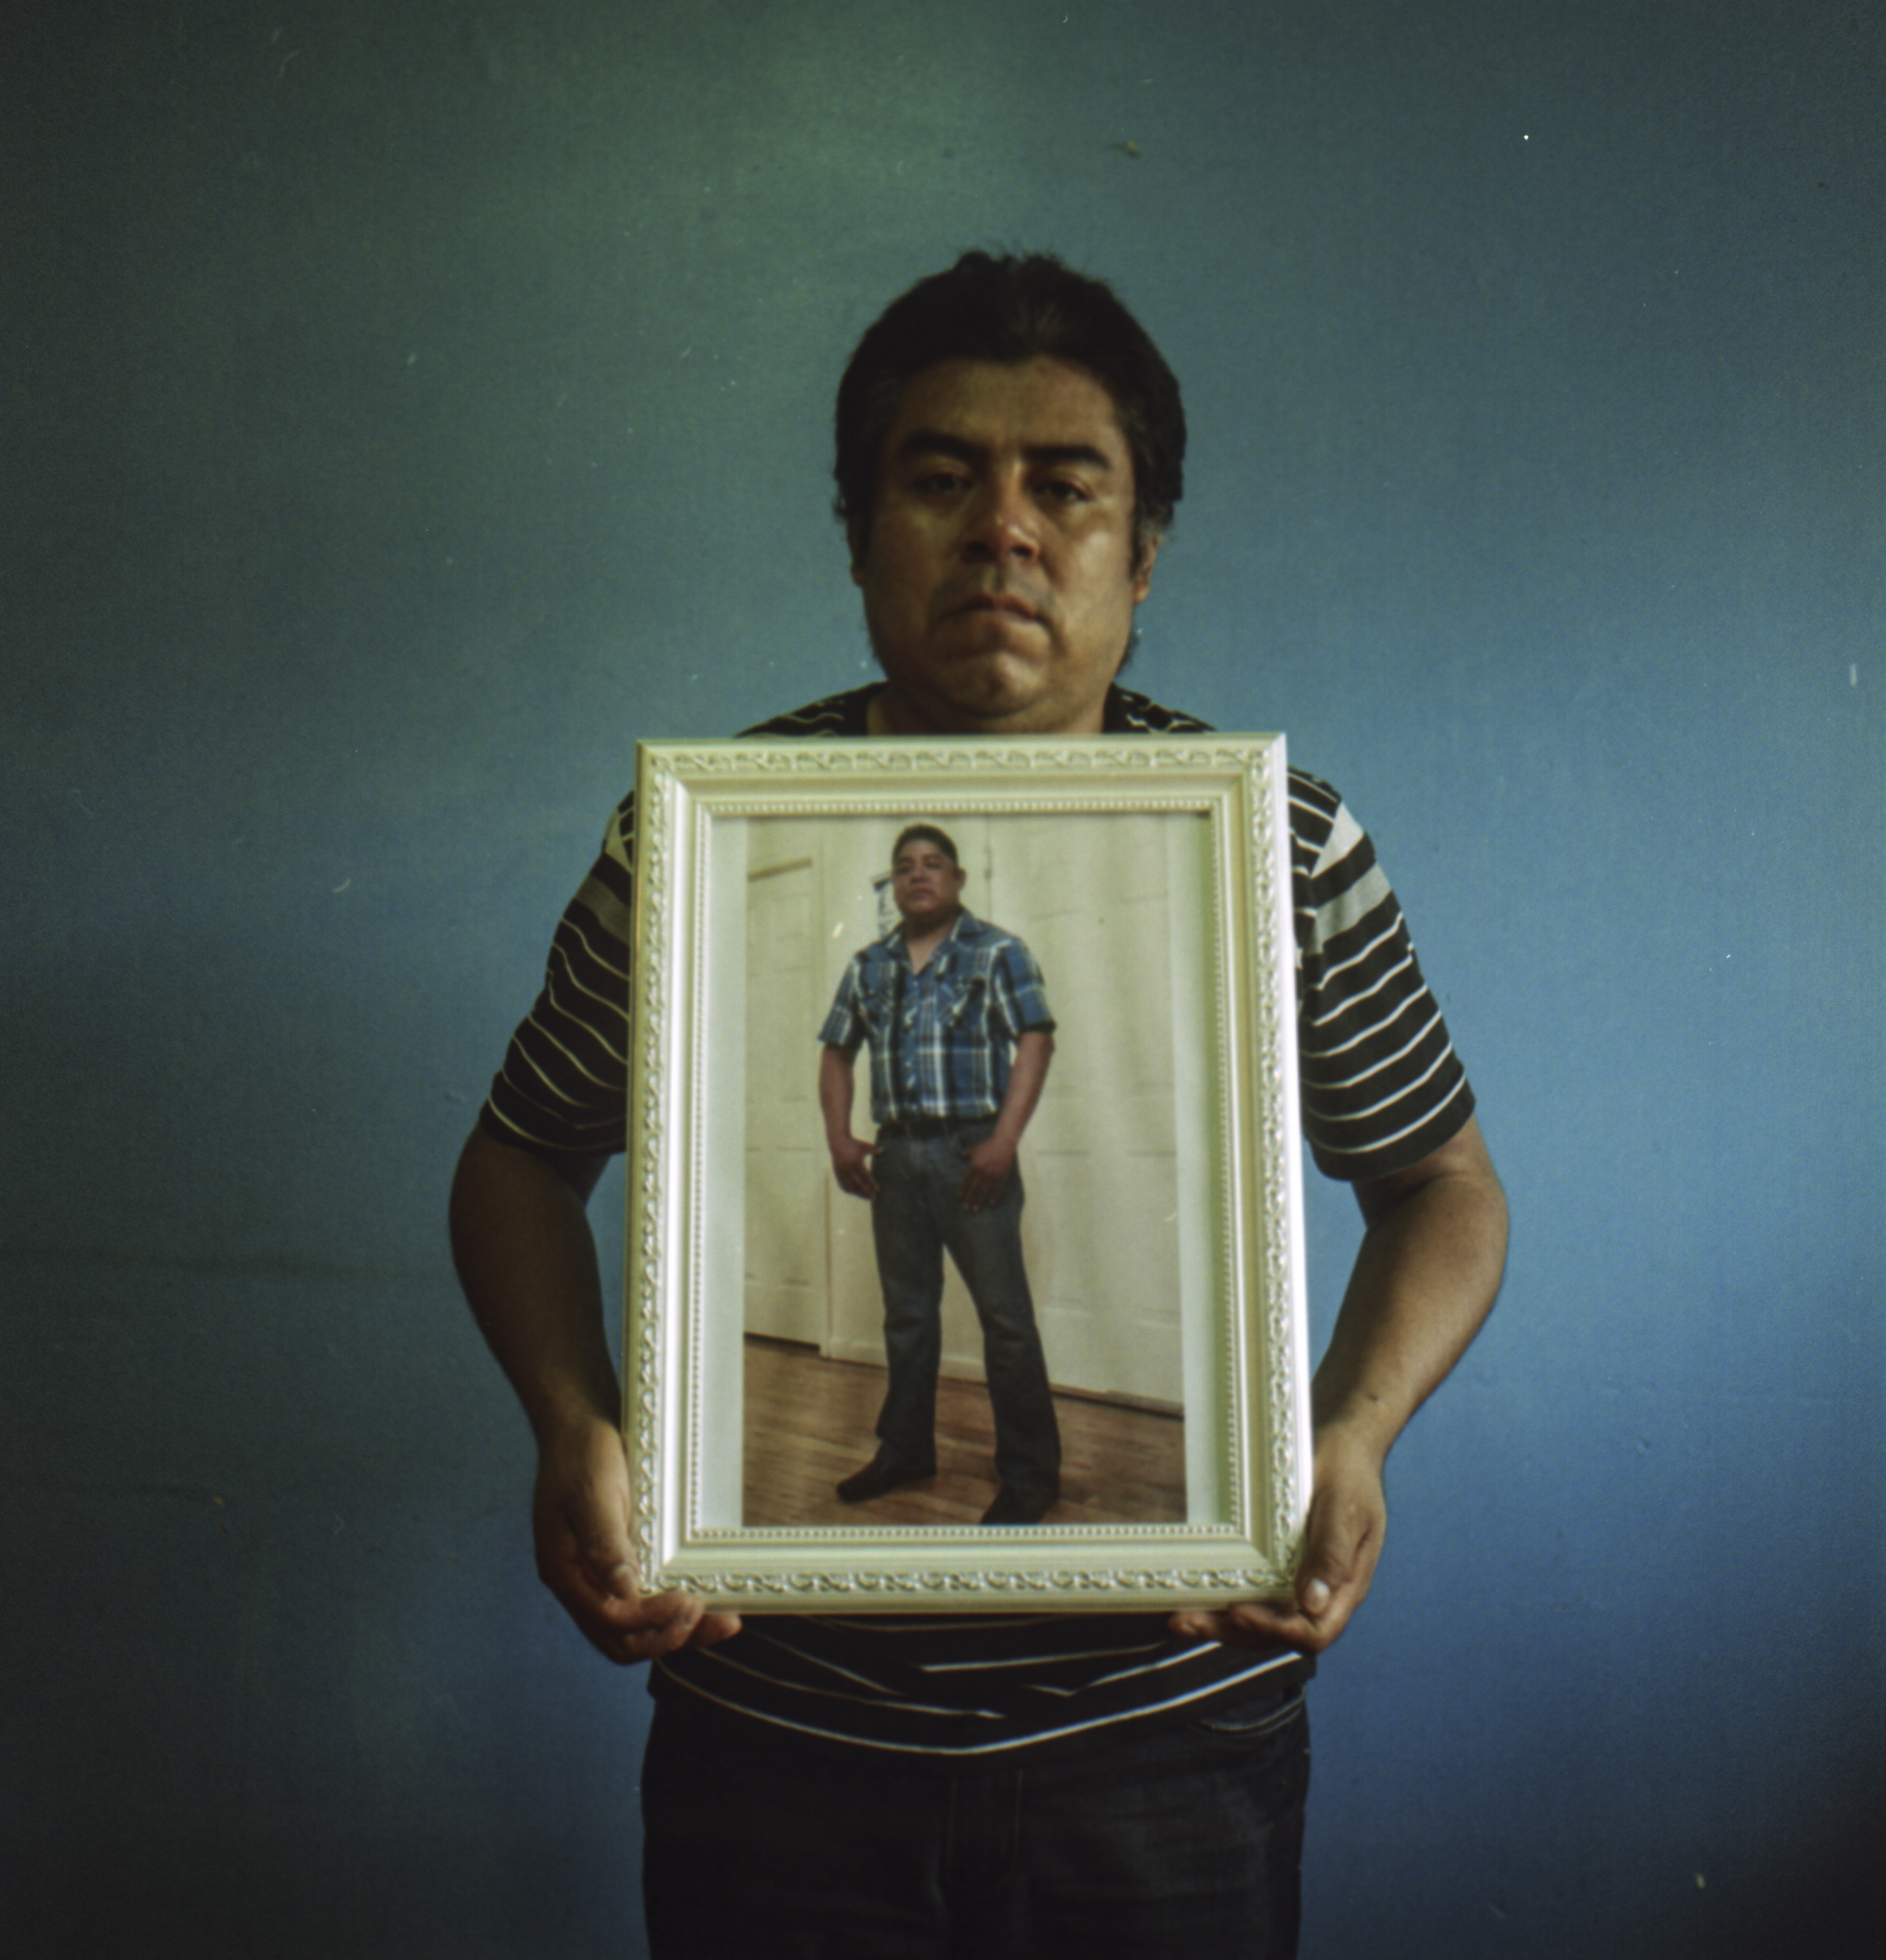 A man holding a framed portrait of his brother on a blue wall background